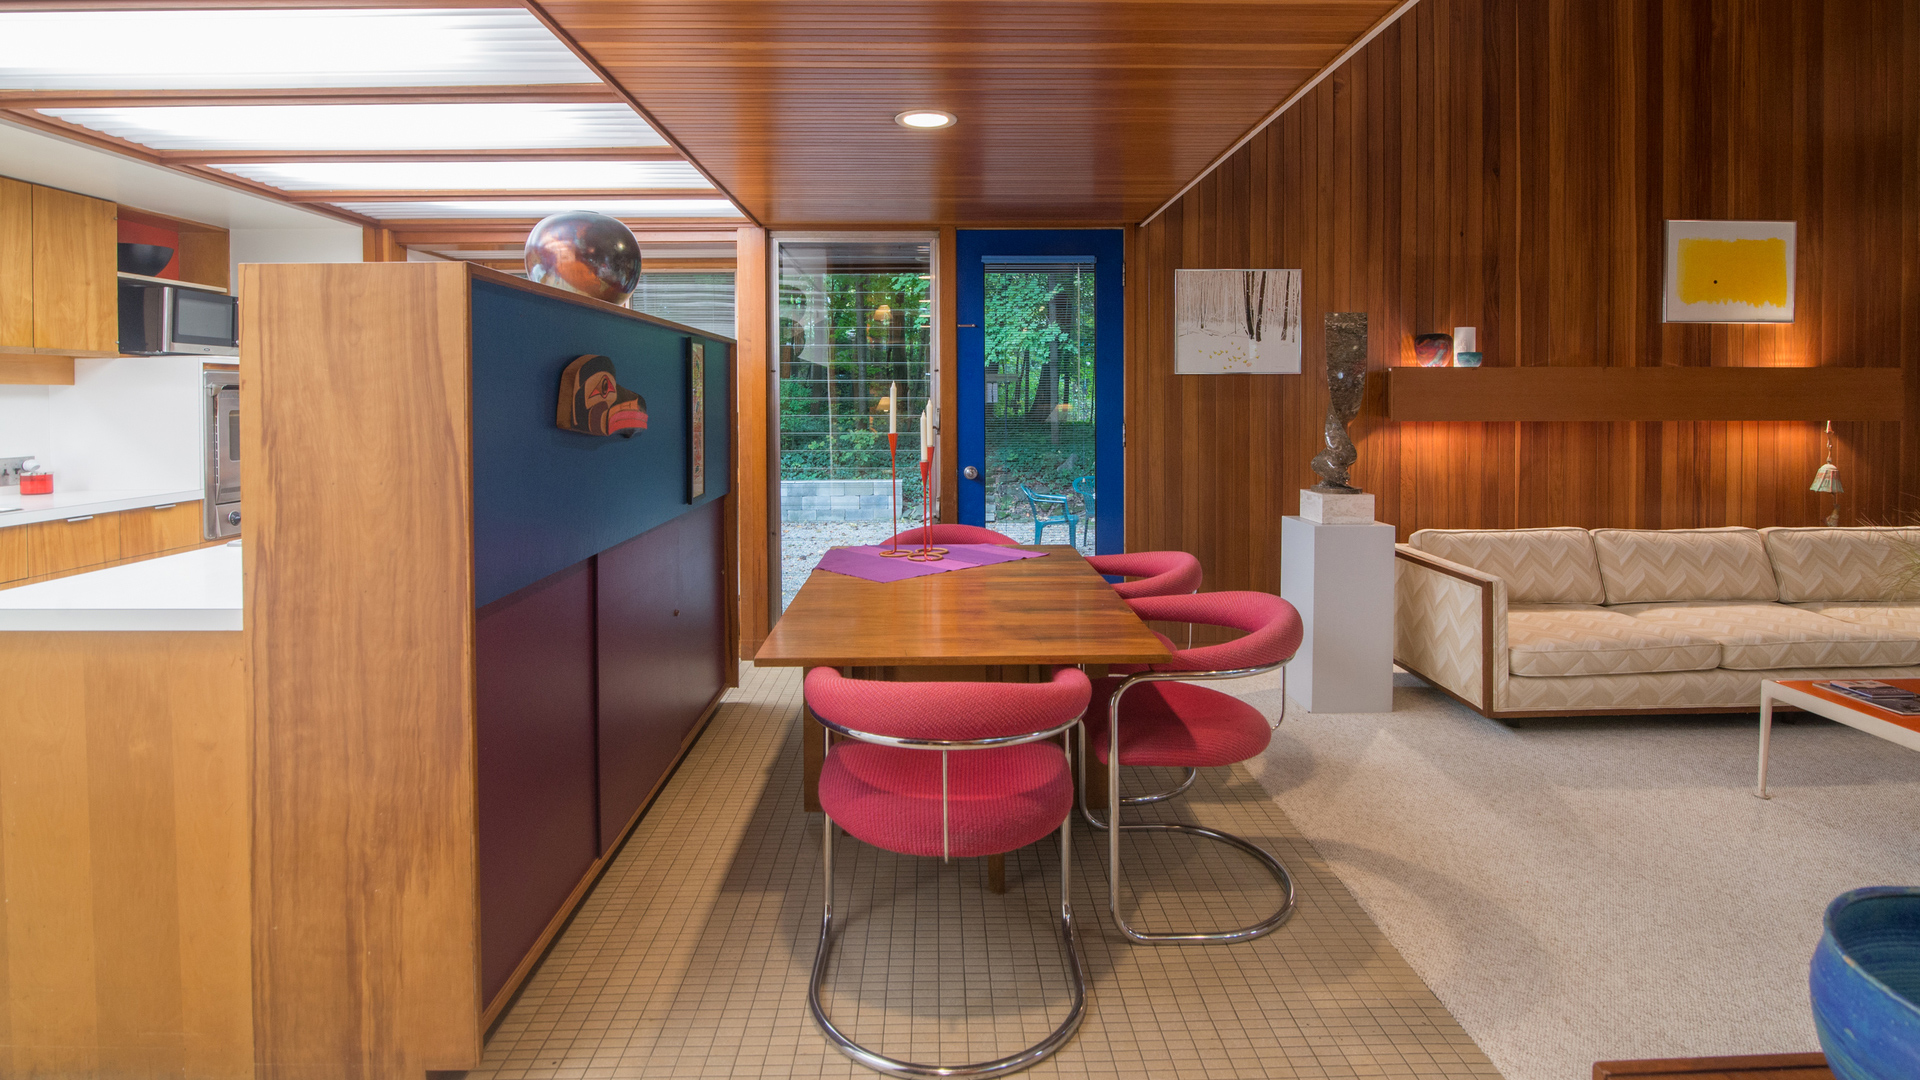 The Tivadar and Dorothy Balogh House retains its original character though has been recently painted in a style keeping with its 1950s design